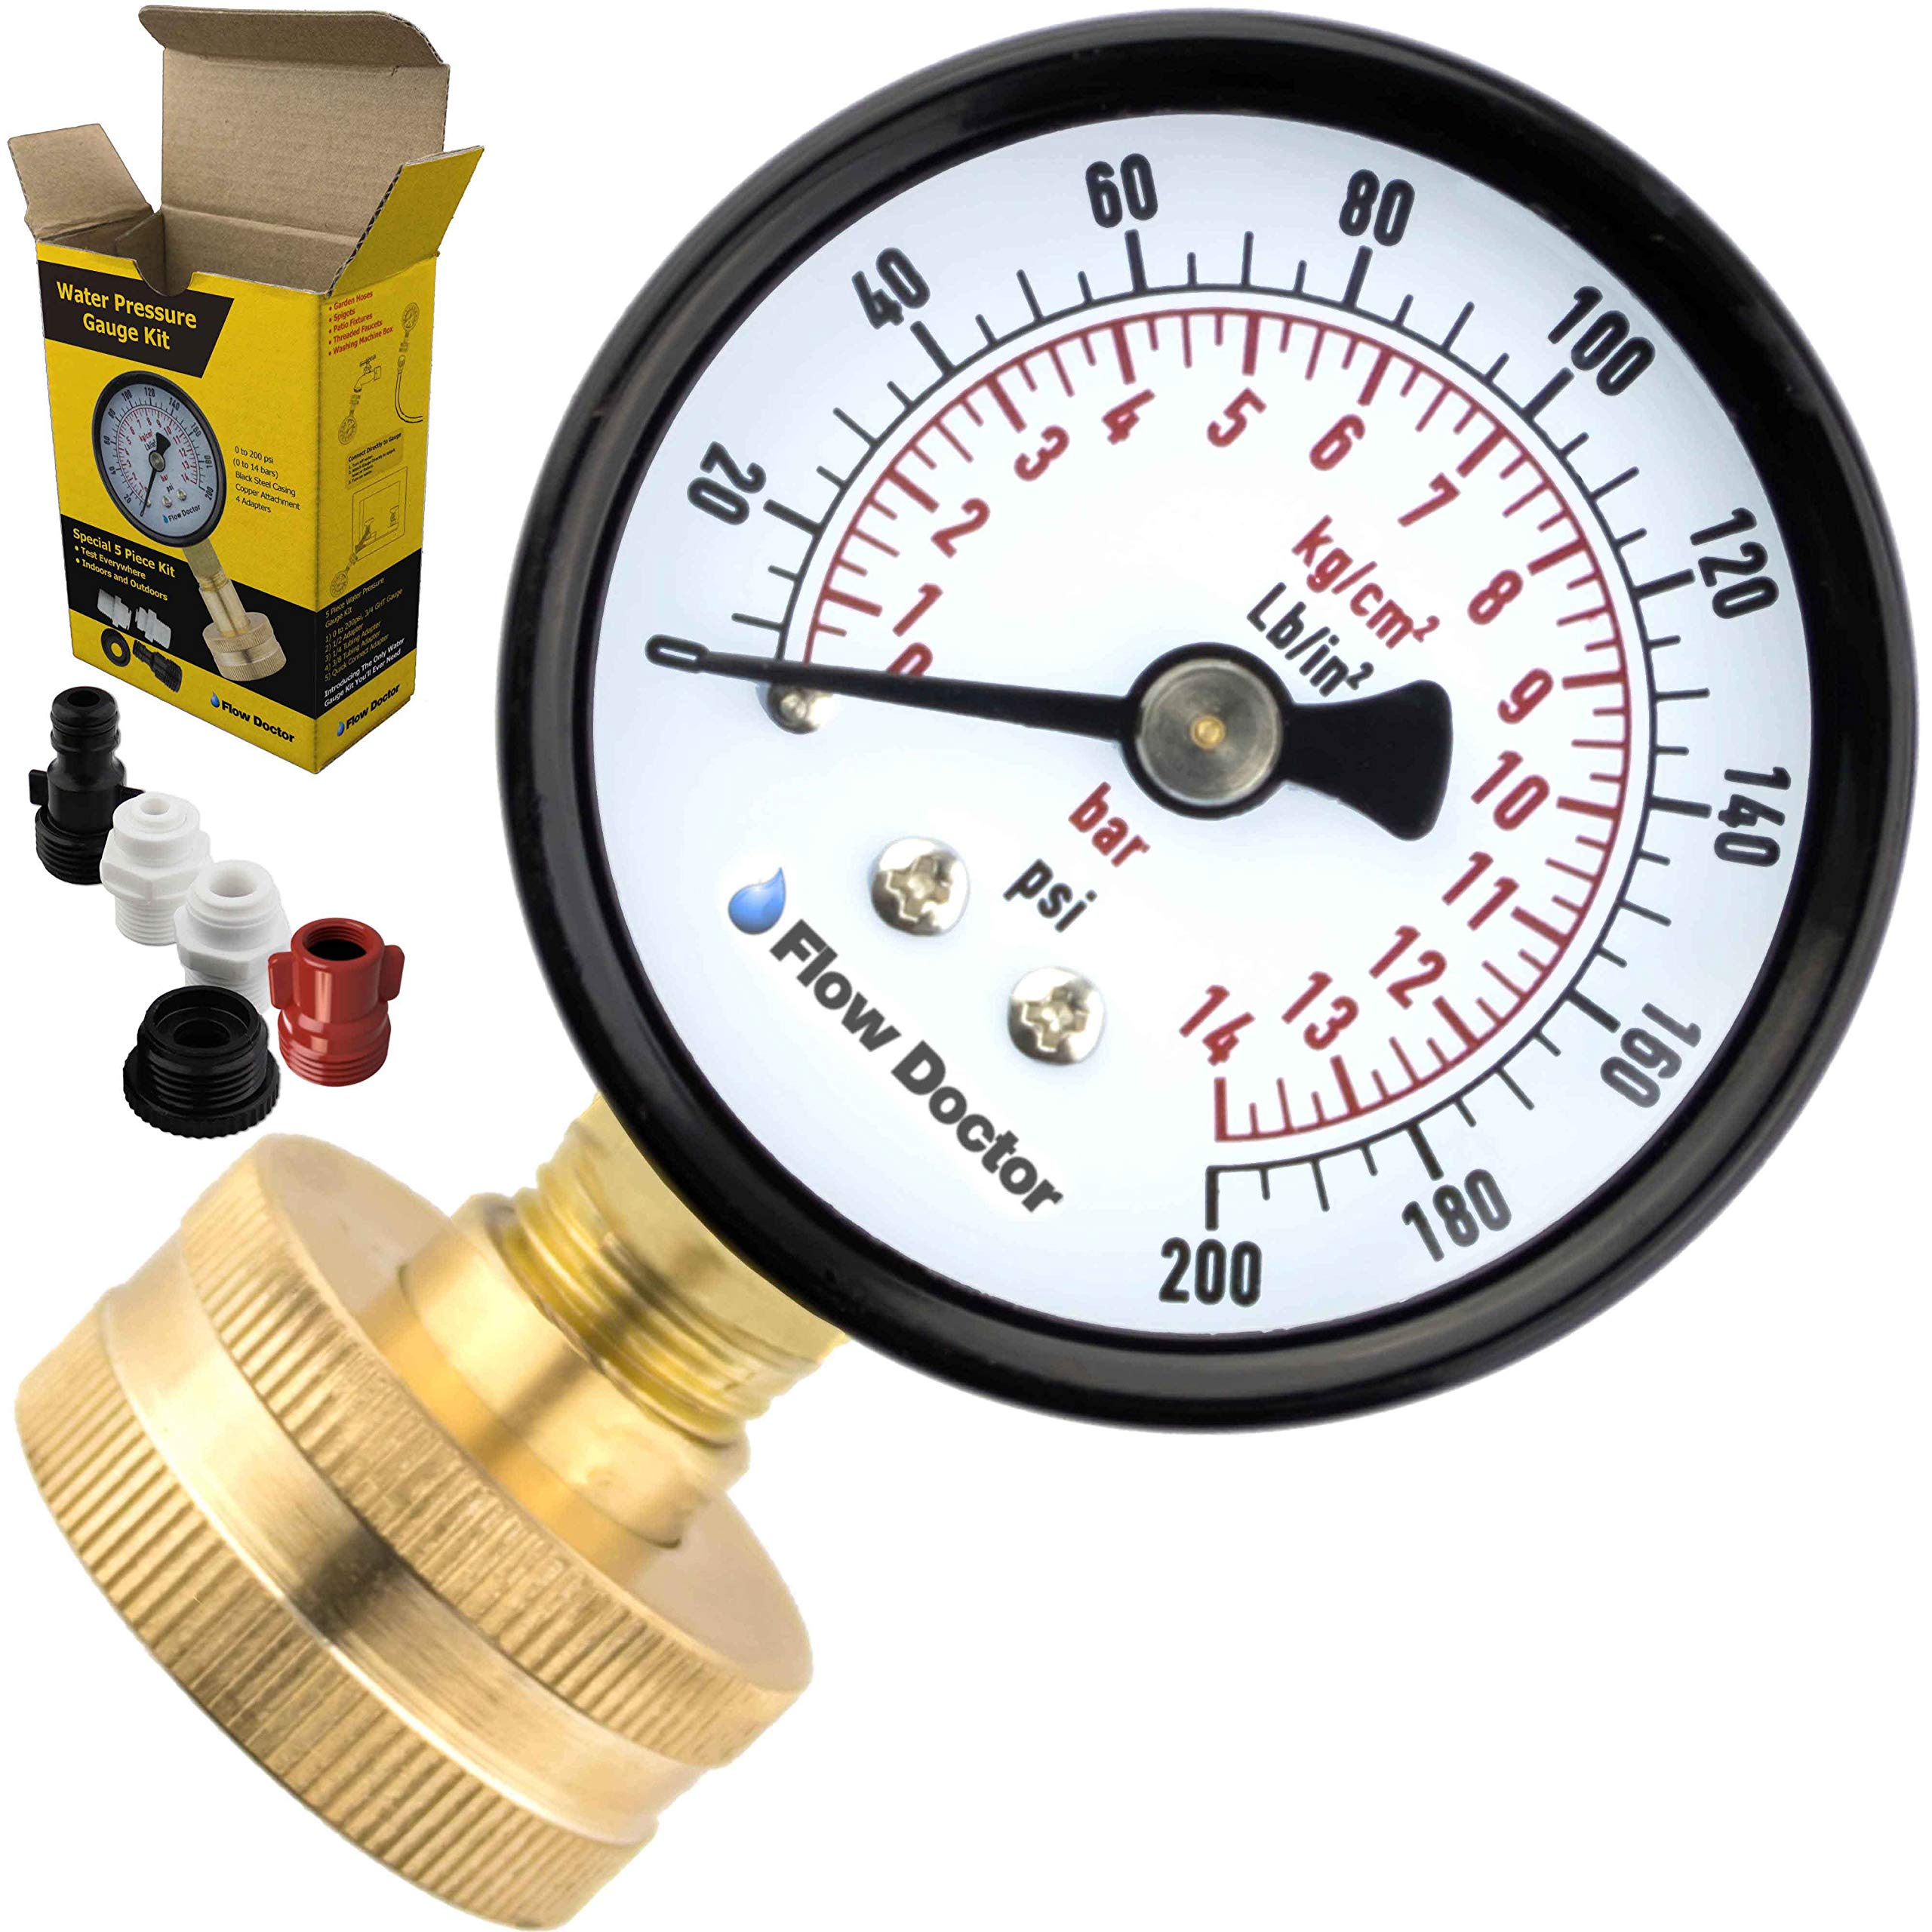 Flow Doctor Water Pressure Gauge Kit, All Purpose, 6 Parts Kit, 0 To 200 Psi, 0 To 14 Bars, Standard 3/4'' Female Garden Hose Thread Plus 5 Adapters To Test in Multiple Locations Indoors and Outdoors